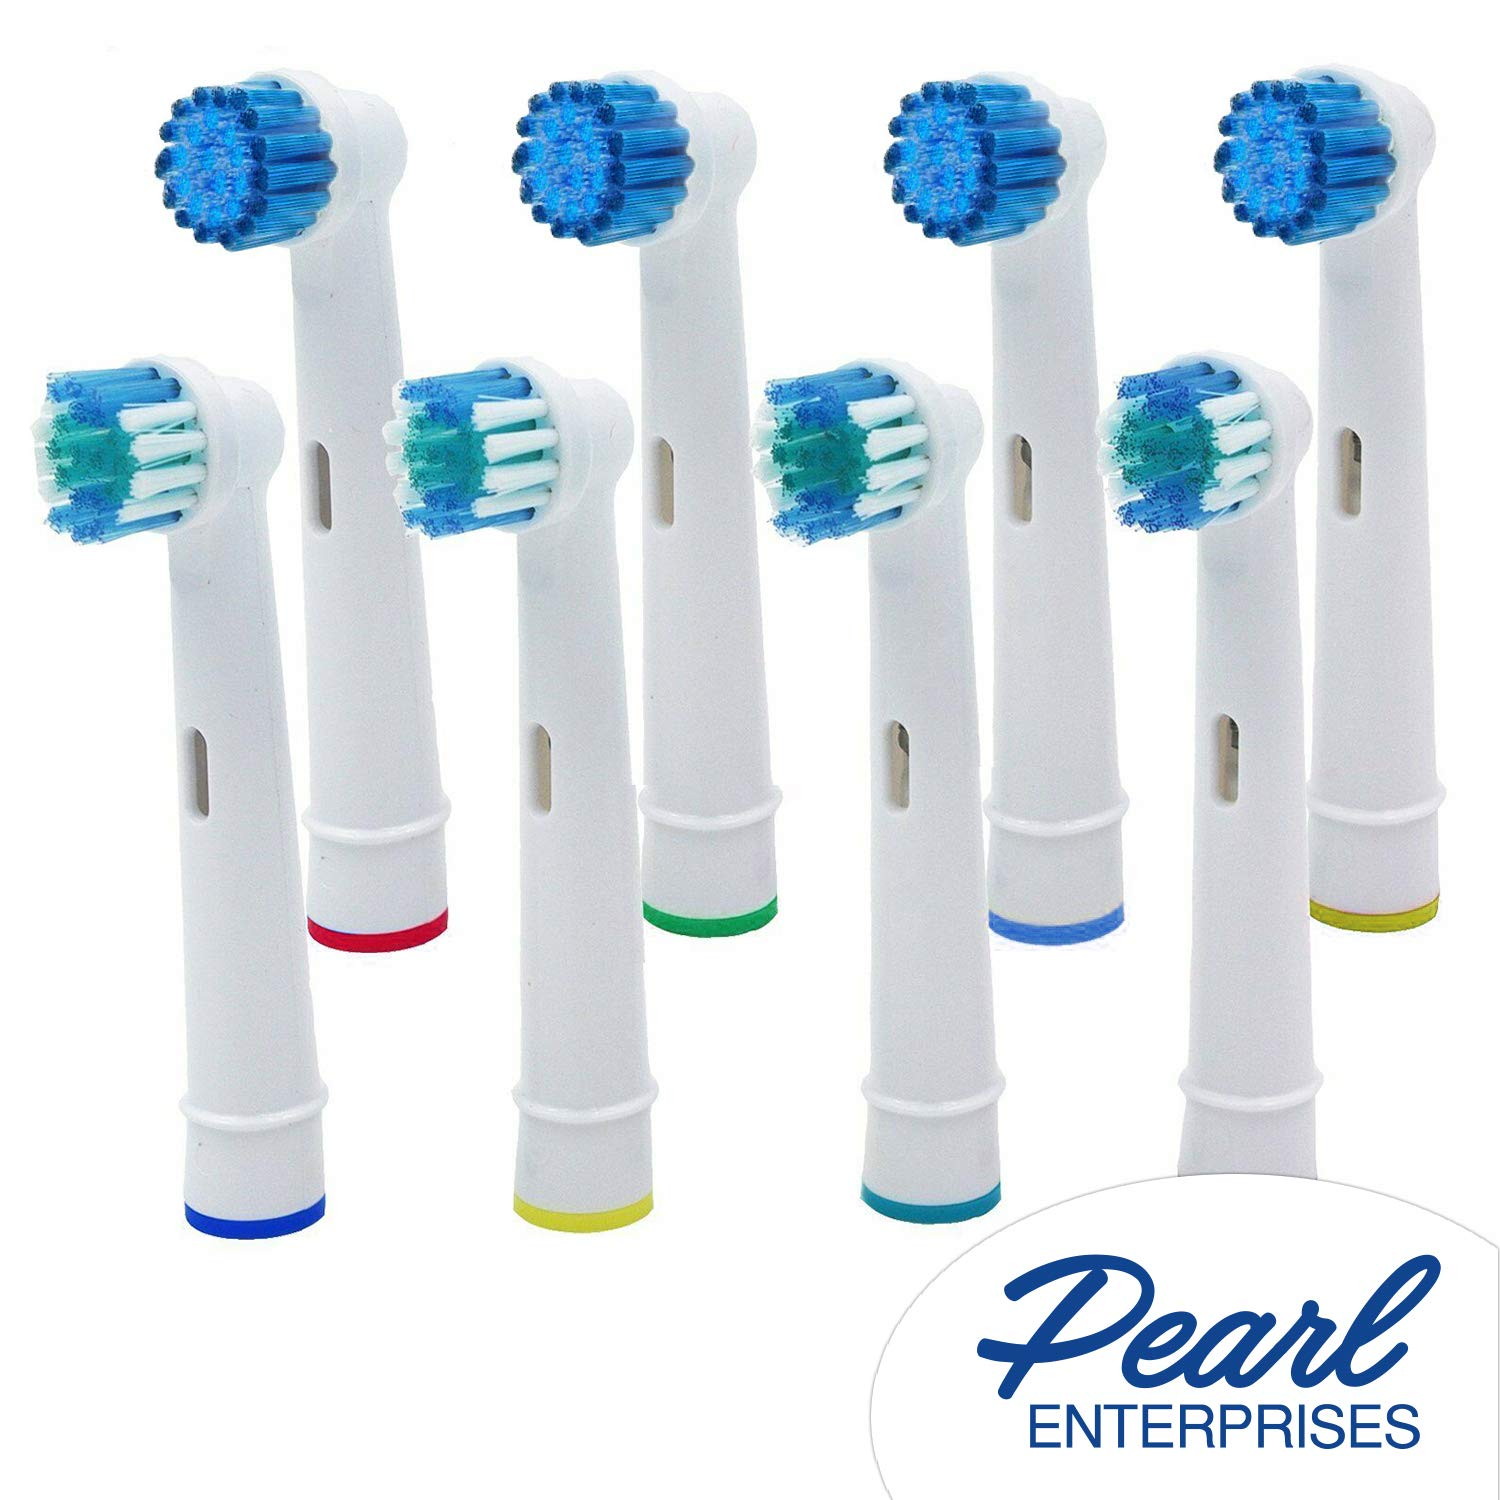 Pearl Enterprises Replacement Brush Heads Compatible With Oral B- Variety Pack of 8 Generic Sensitive Clean and Precision Care Electric Toothbrush Heads –Fits Oralb Braun 7000, Pro 1000, 9600, 500.